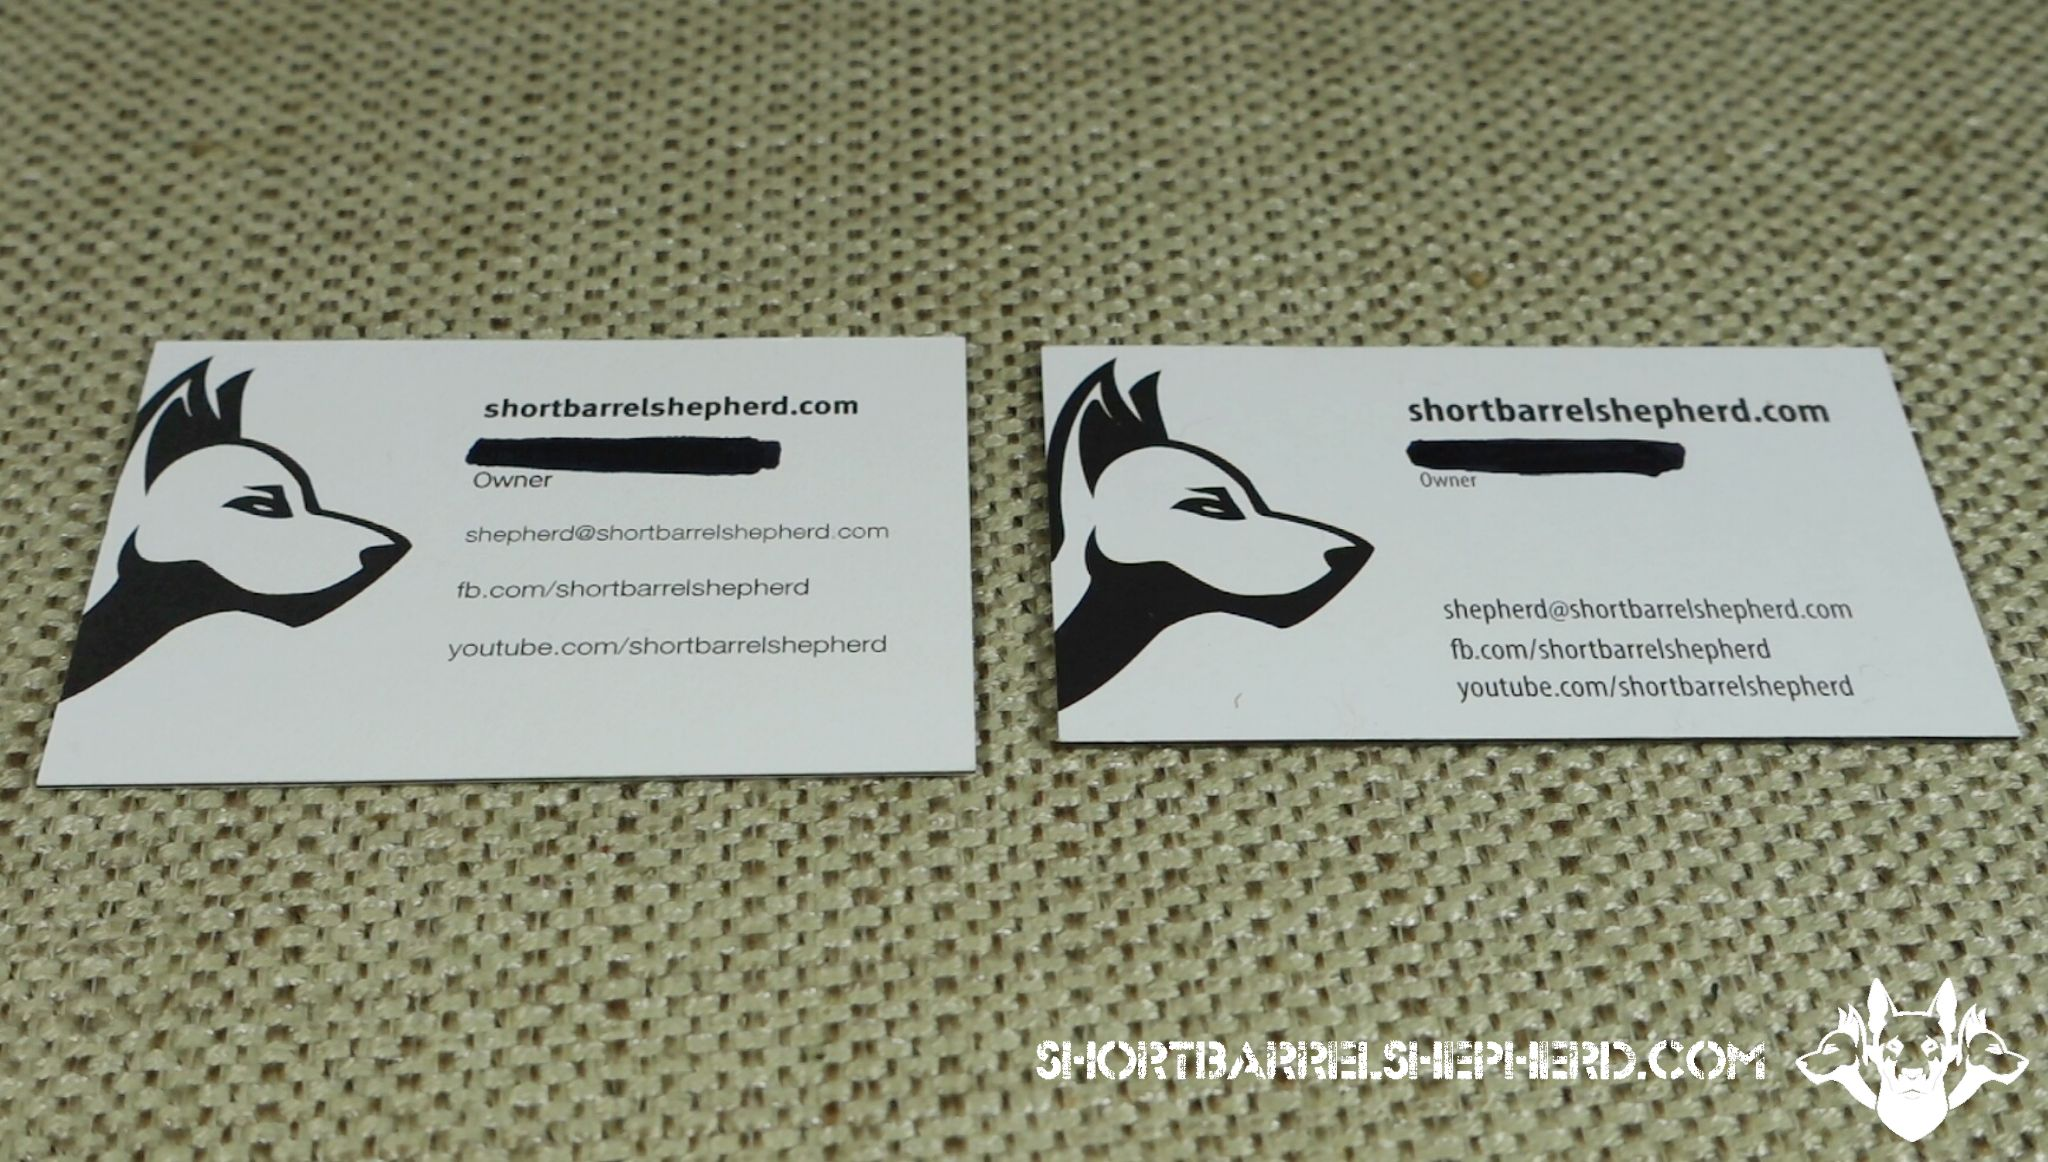 Moo luxe vs gotprint trifecta business card comparison review moo luxe vs gotprint trifecta business card comparison review short barrel shepherd reheart Image collections